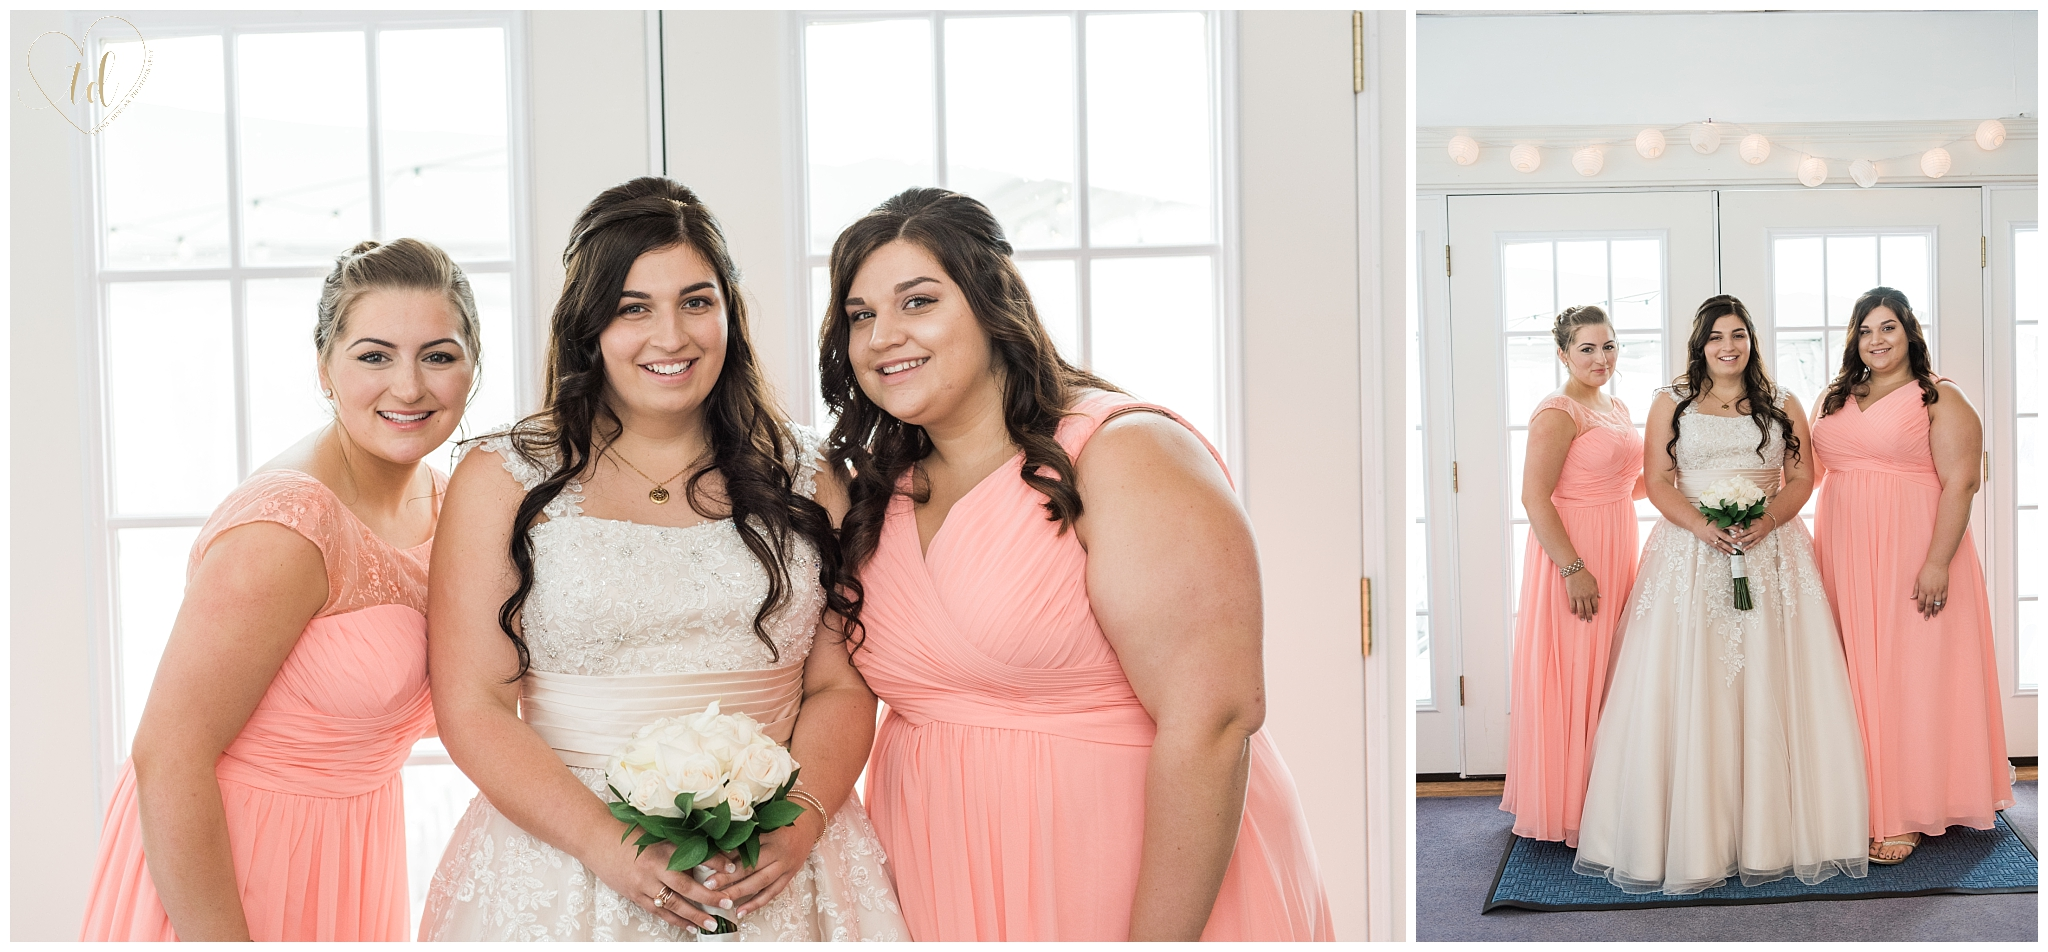 Bride and Bridesmaid wedding portrait photography in Maine.